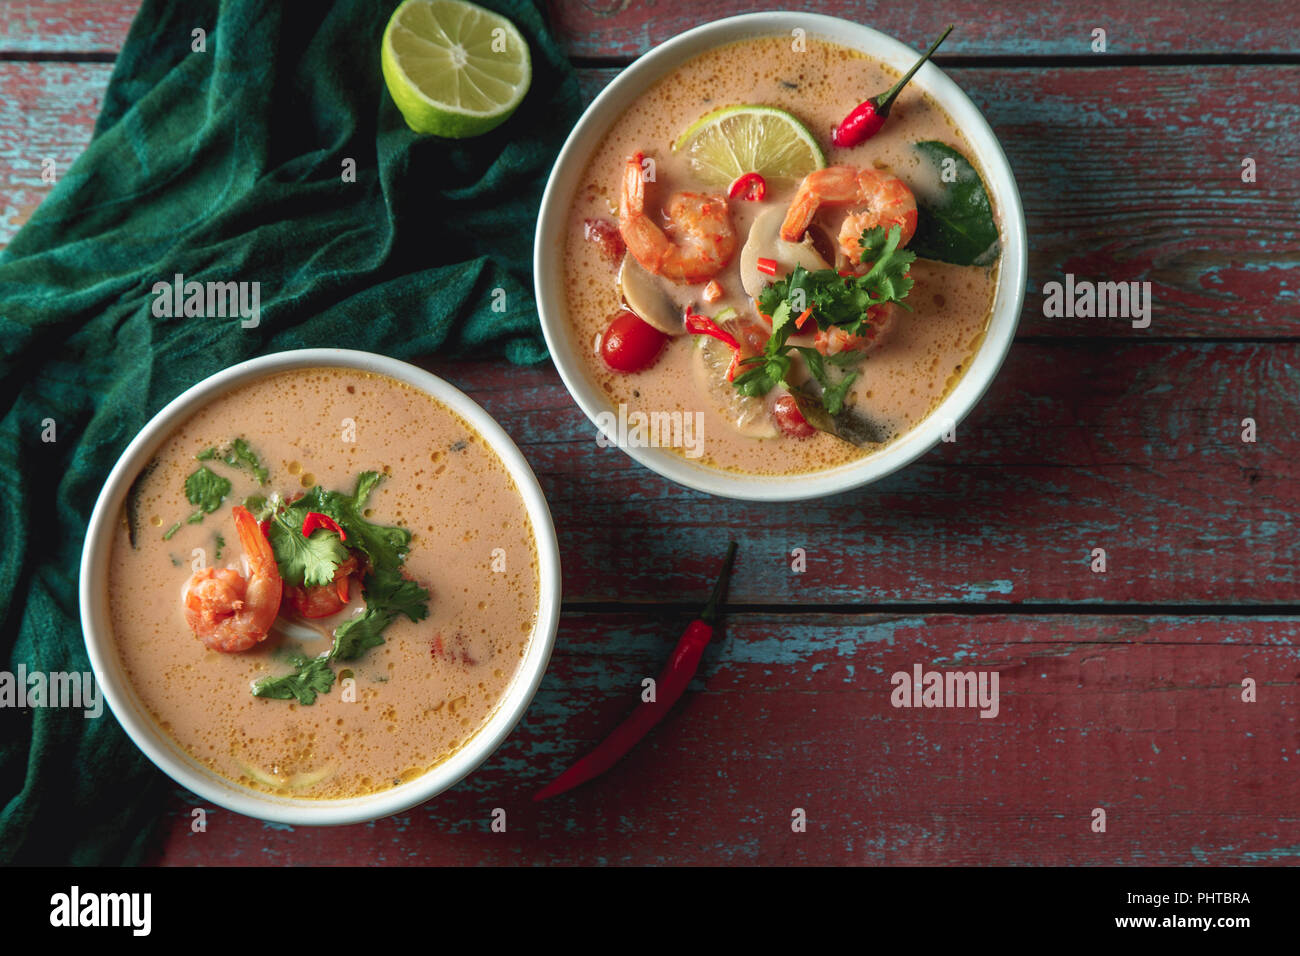 Traditional thai soup tom yum with shrimps and mushrooms, served with fresh lime slices. Top view, rustic wooden background - Stock Image